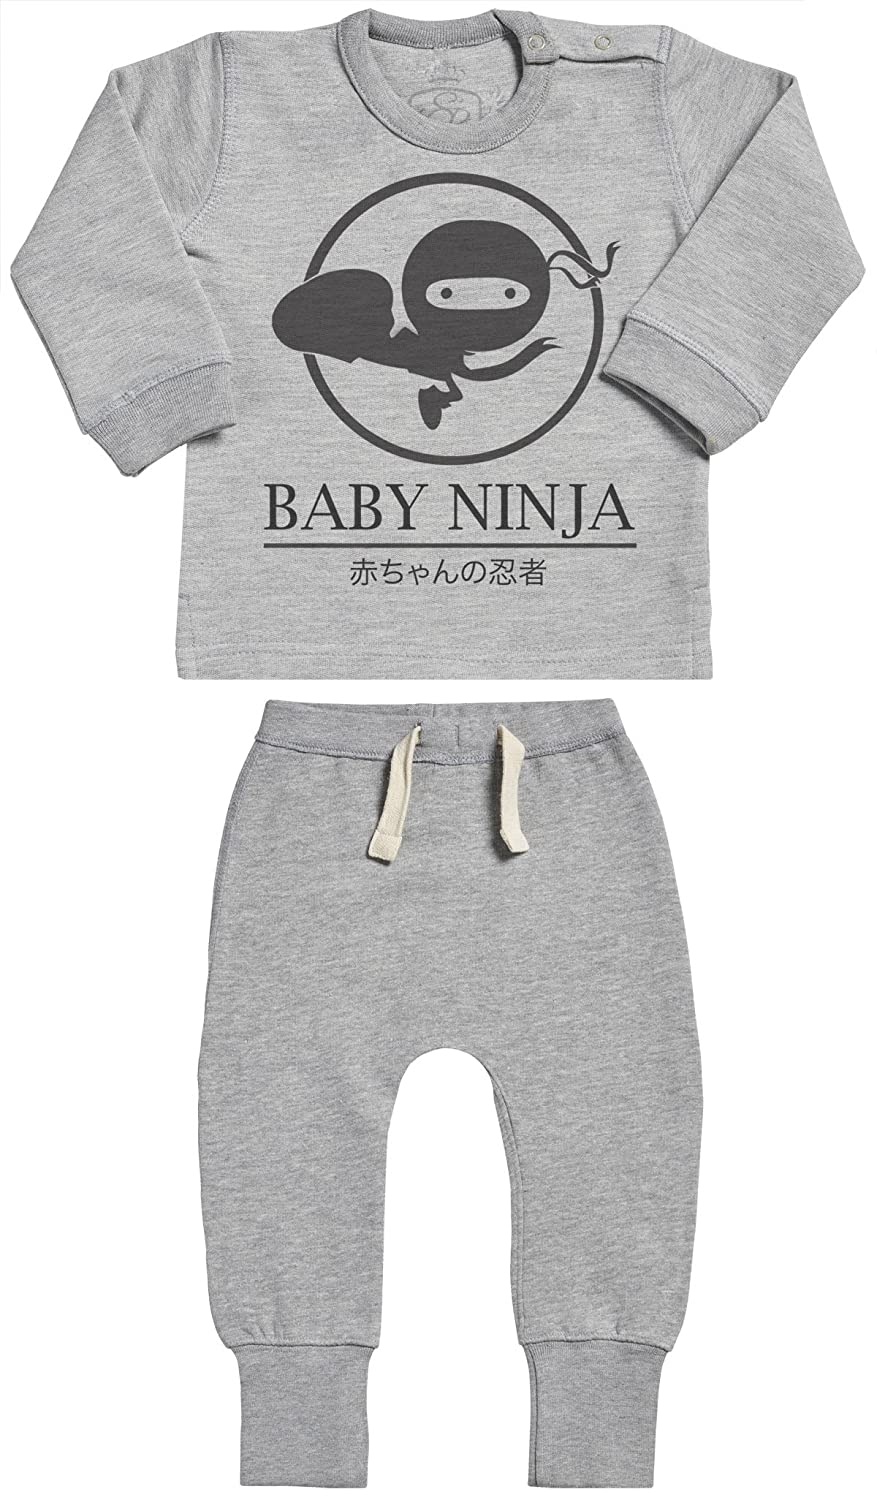 SR Baby Ninja Baby Outfit Baby Gift Set Baby Sweater /& Baby Joggers Baby Clothing Outfit